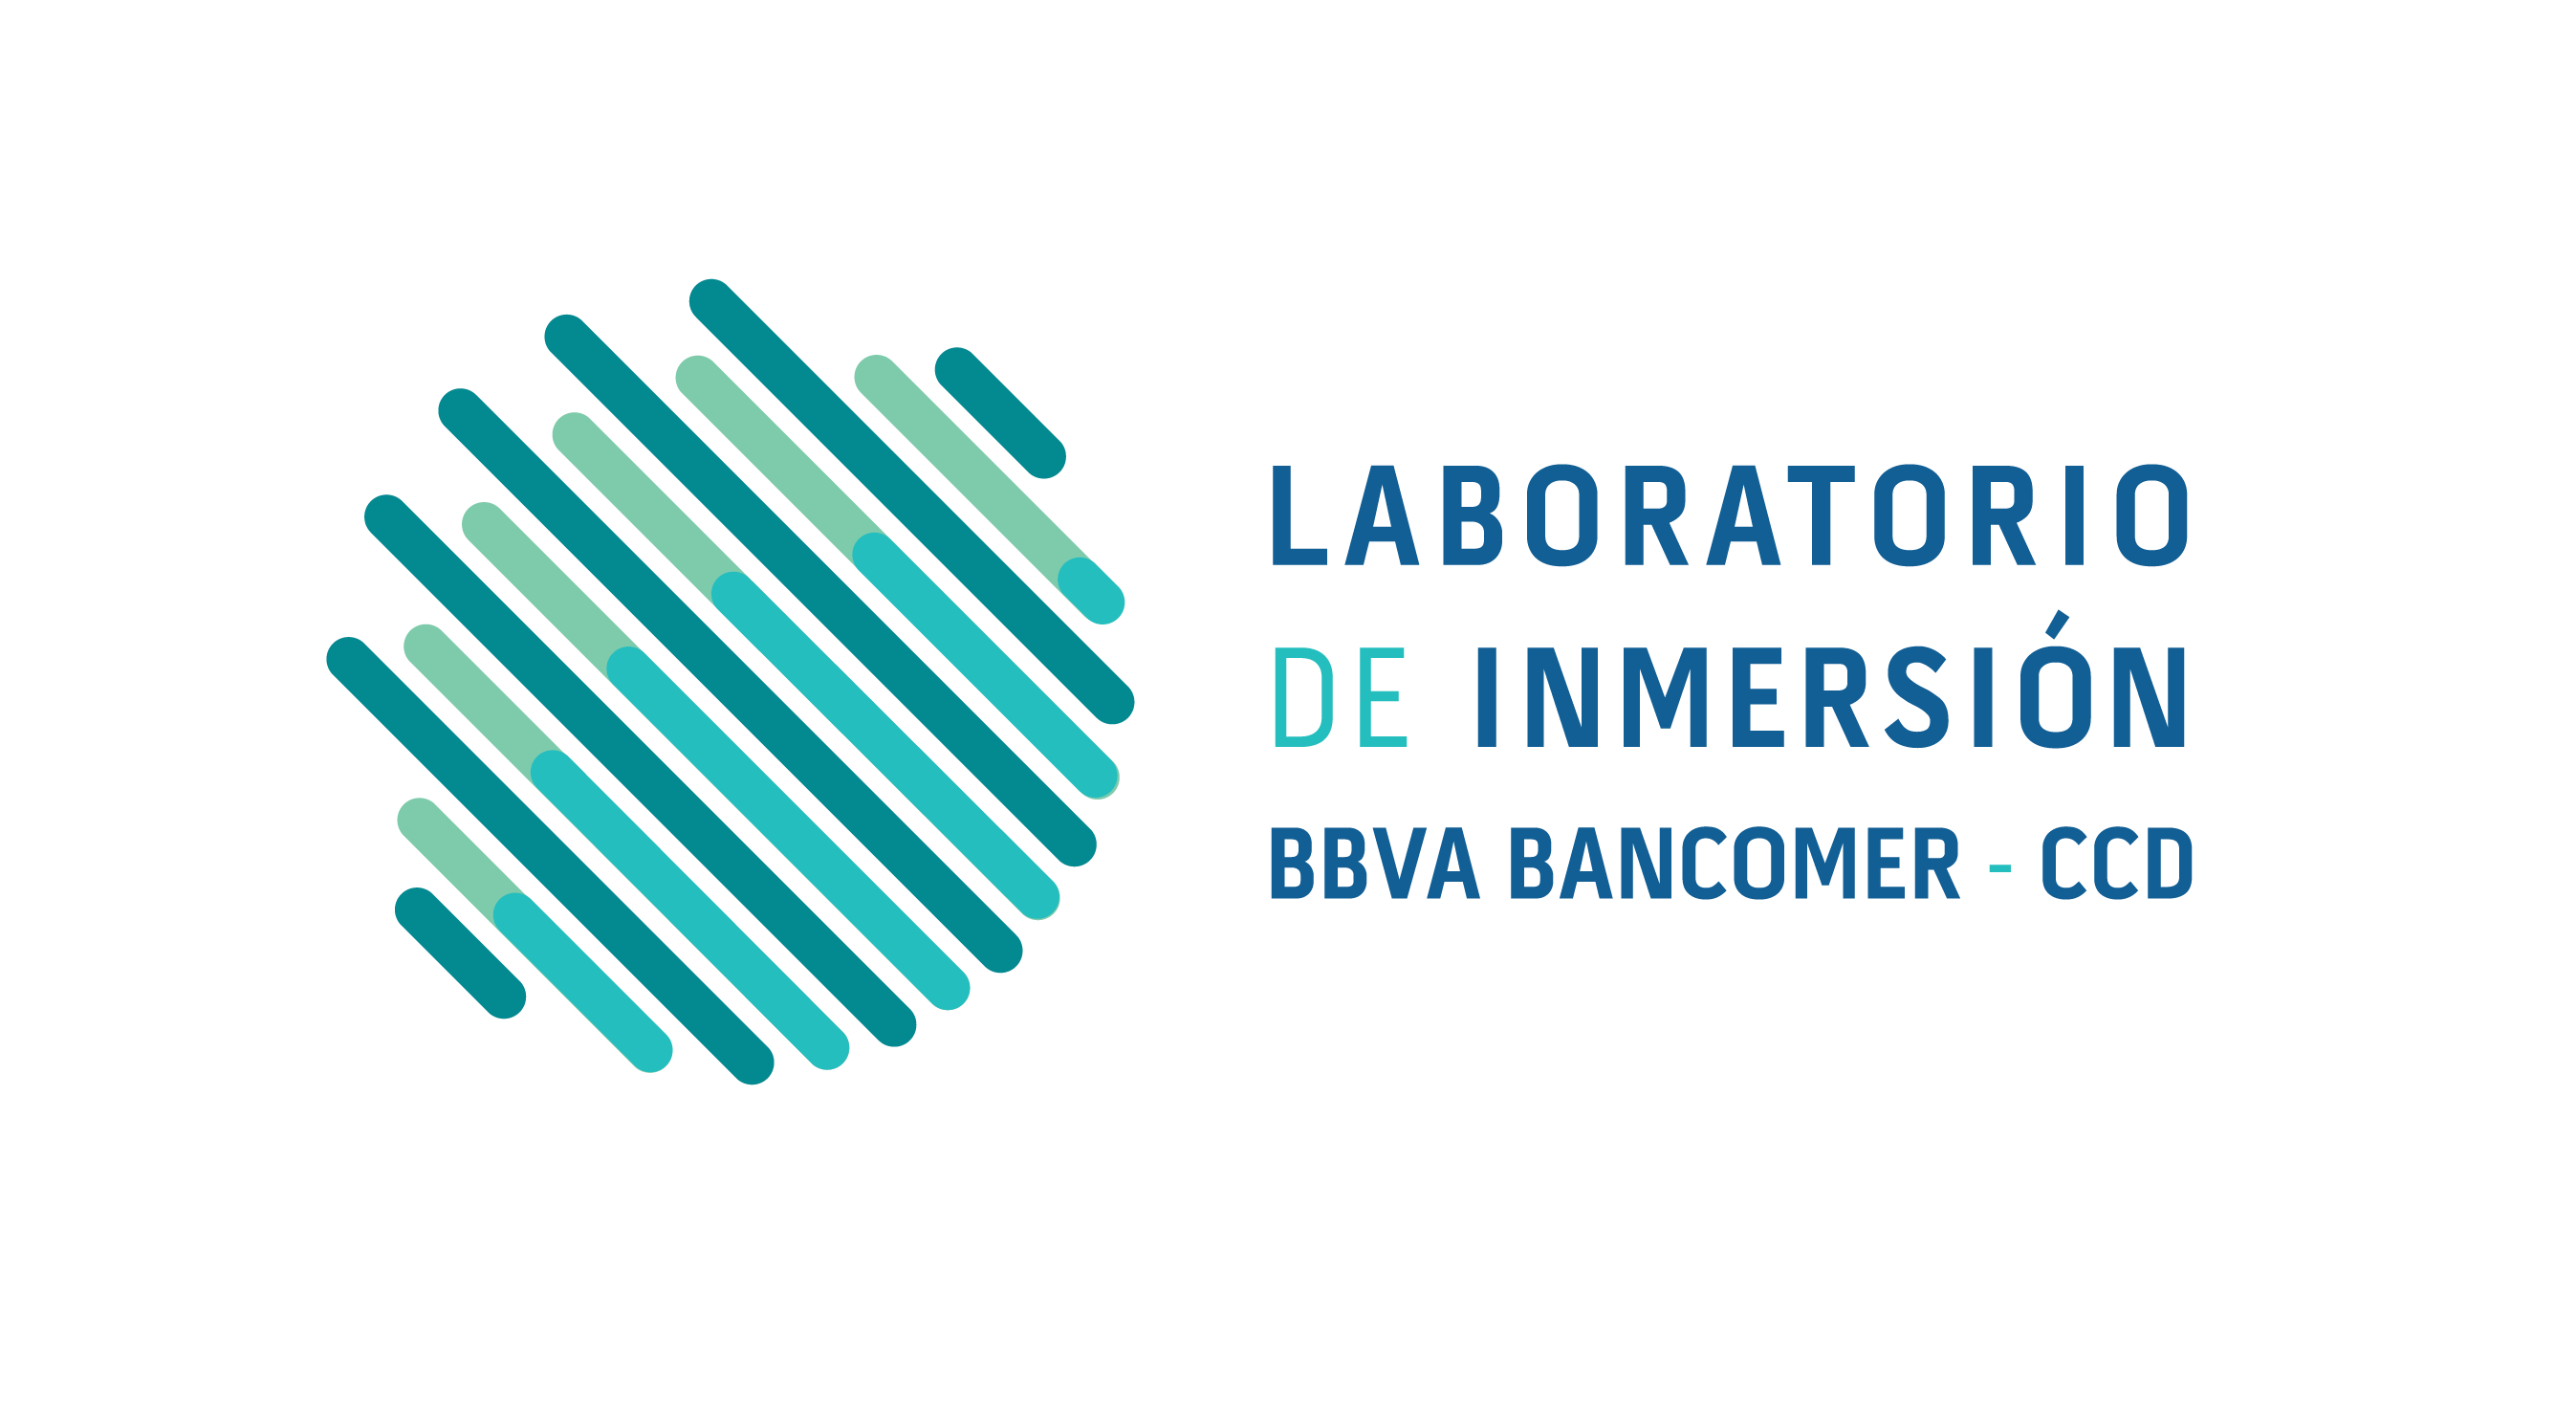 Laboratorio De Inmersion